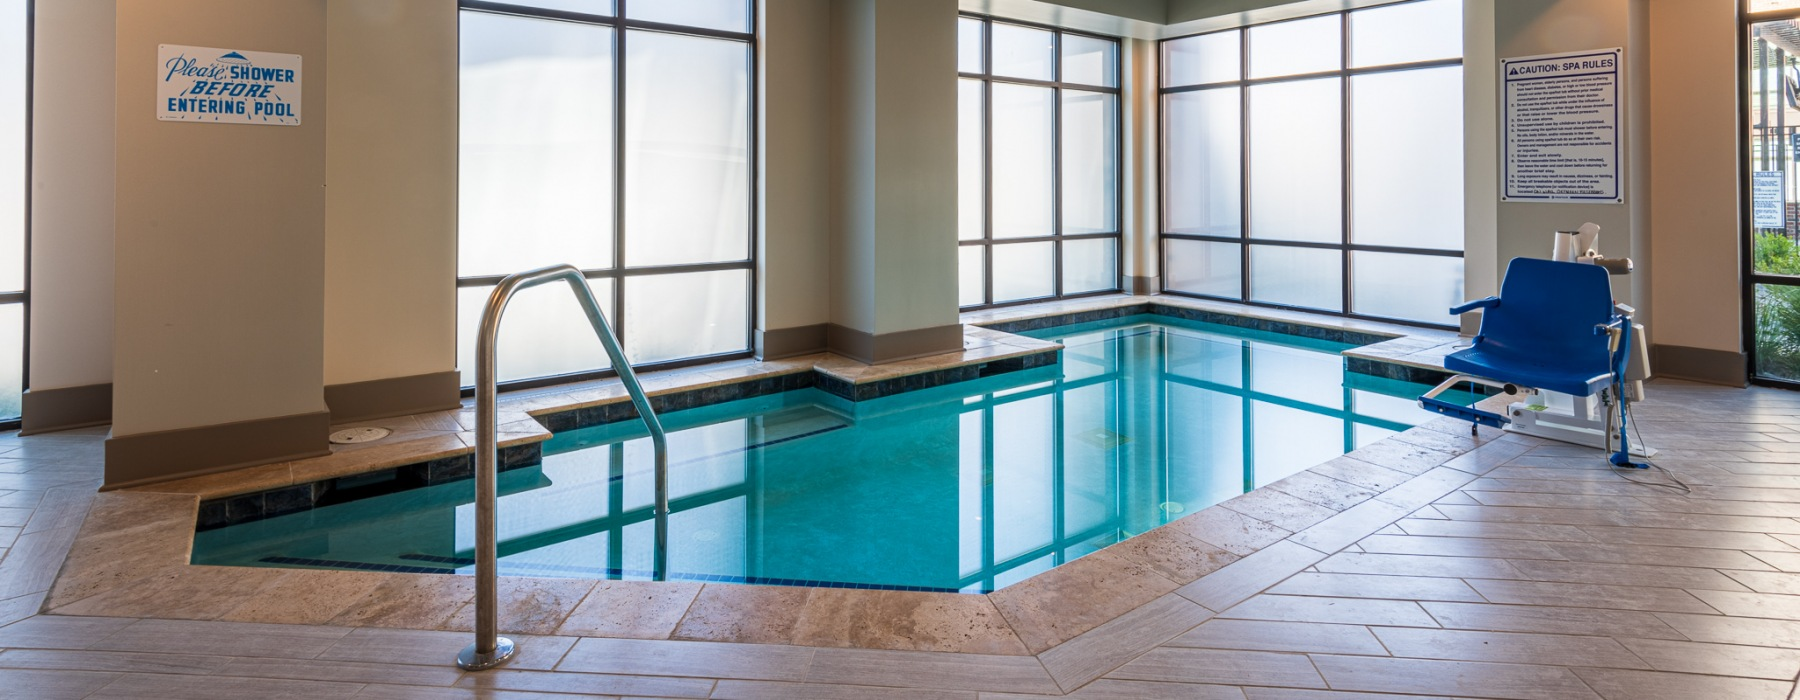 Resort inspired indoor pool at Carraway Village Apartments in Chapel Hill, NC